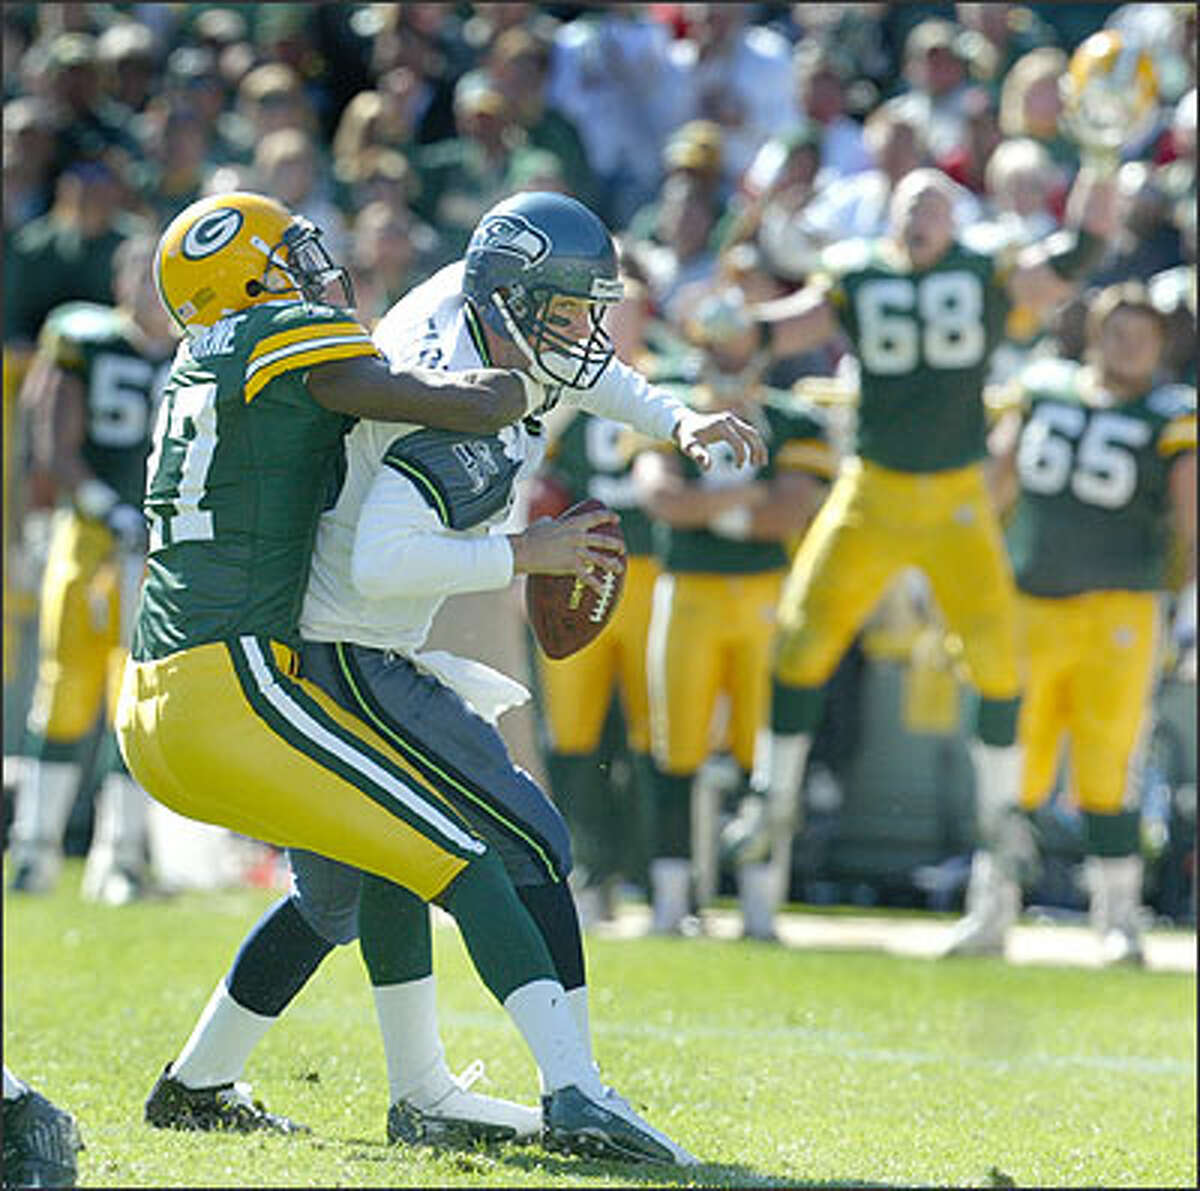 Seahawks quarterback Matt Hasselbeck is sacked near the end of the second quarter for a seven-yard loss by Packers cornerback Michael Hawthorne at the Packer 39-yard-line.